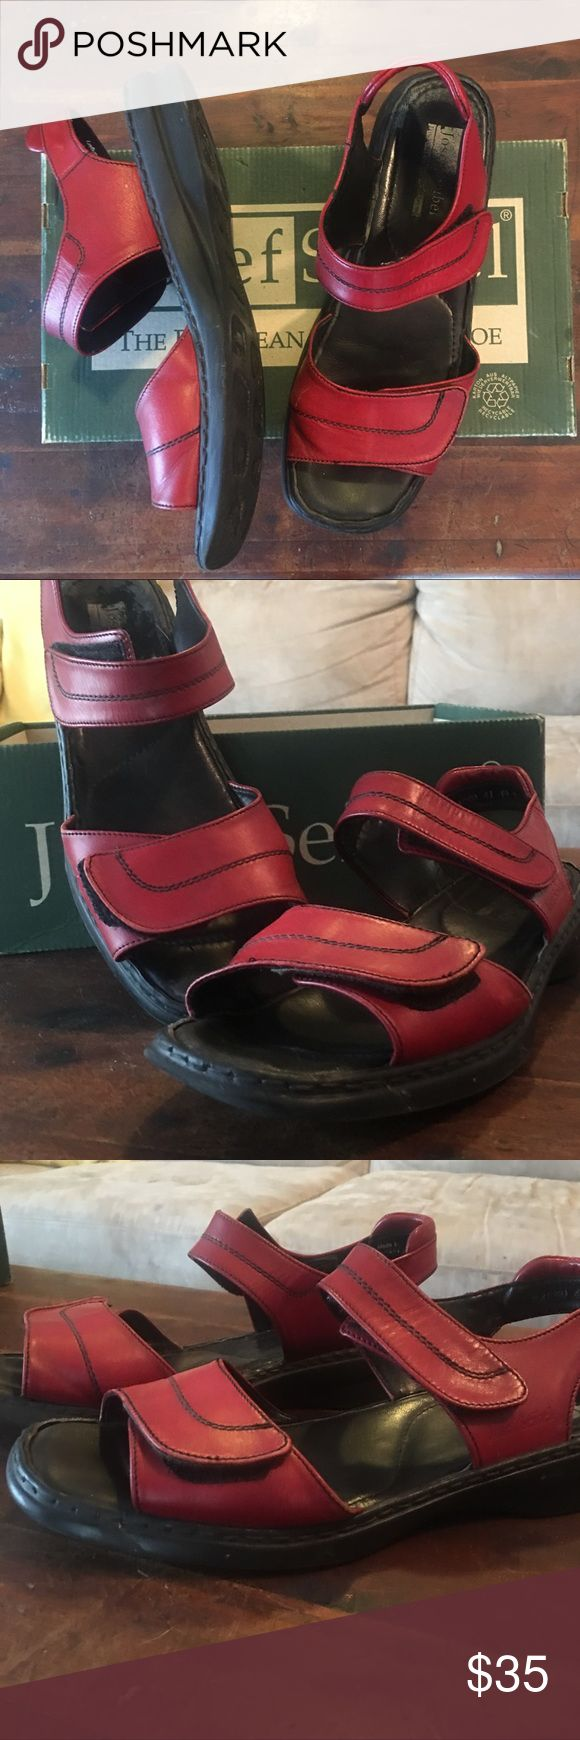 European sandals shoes - Josef Seibel Sandals In Excellent Used Condition The European Comfort Shoe Is Amazing And